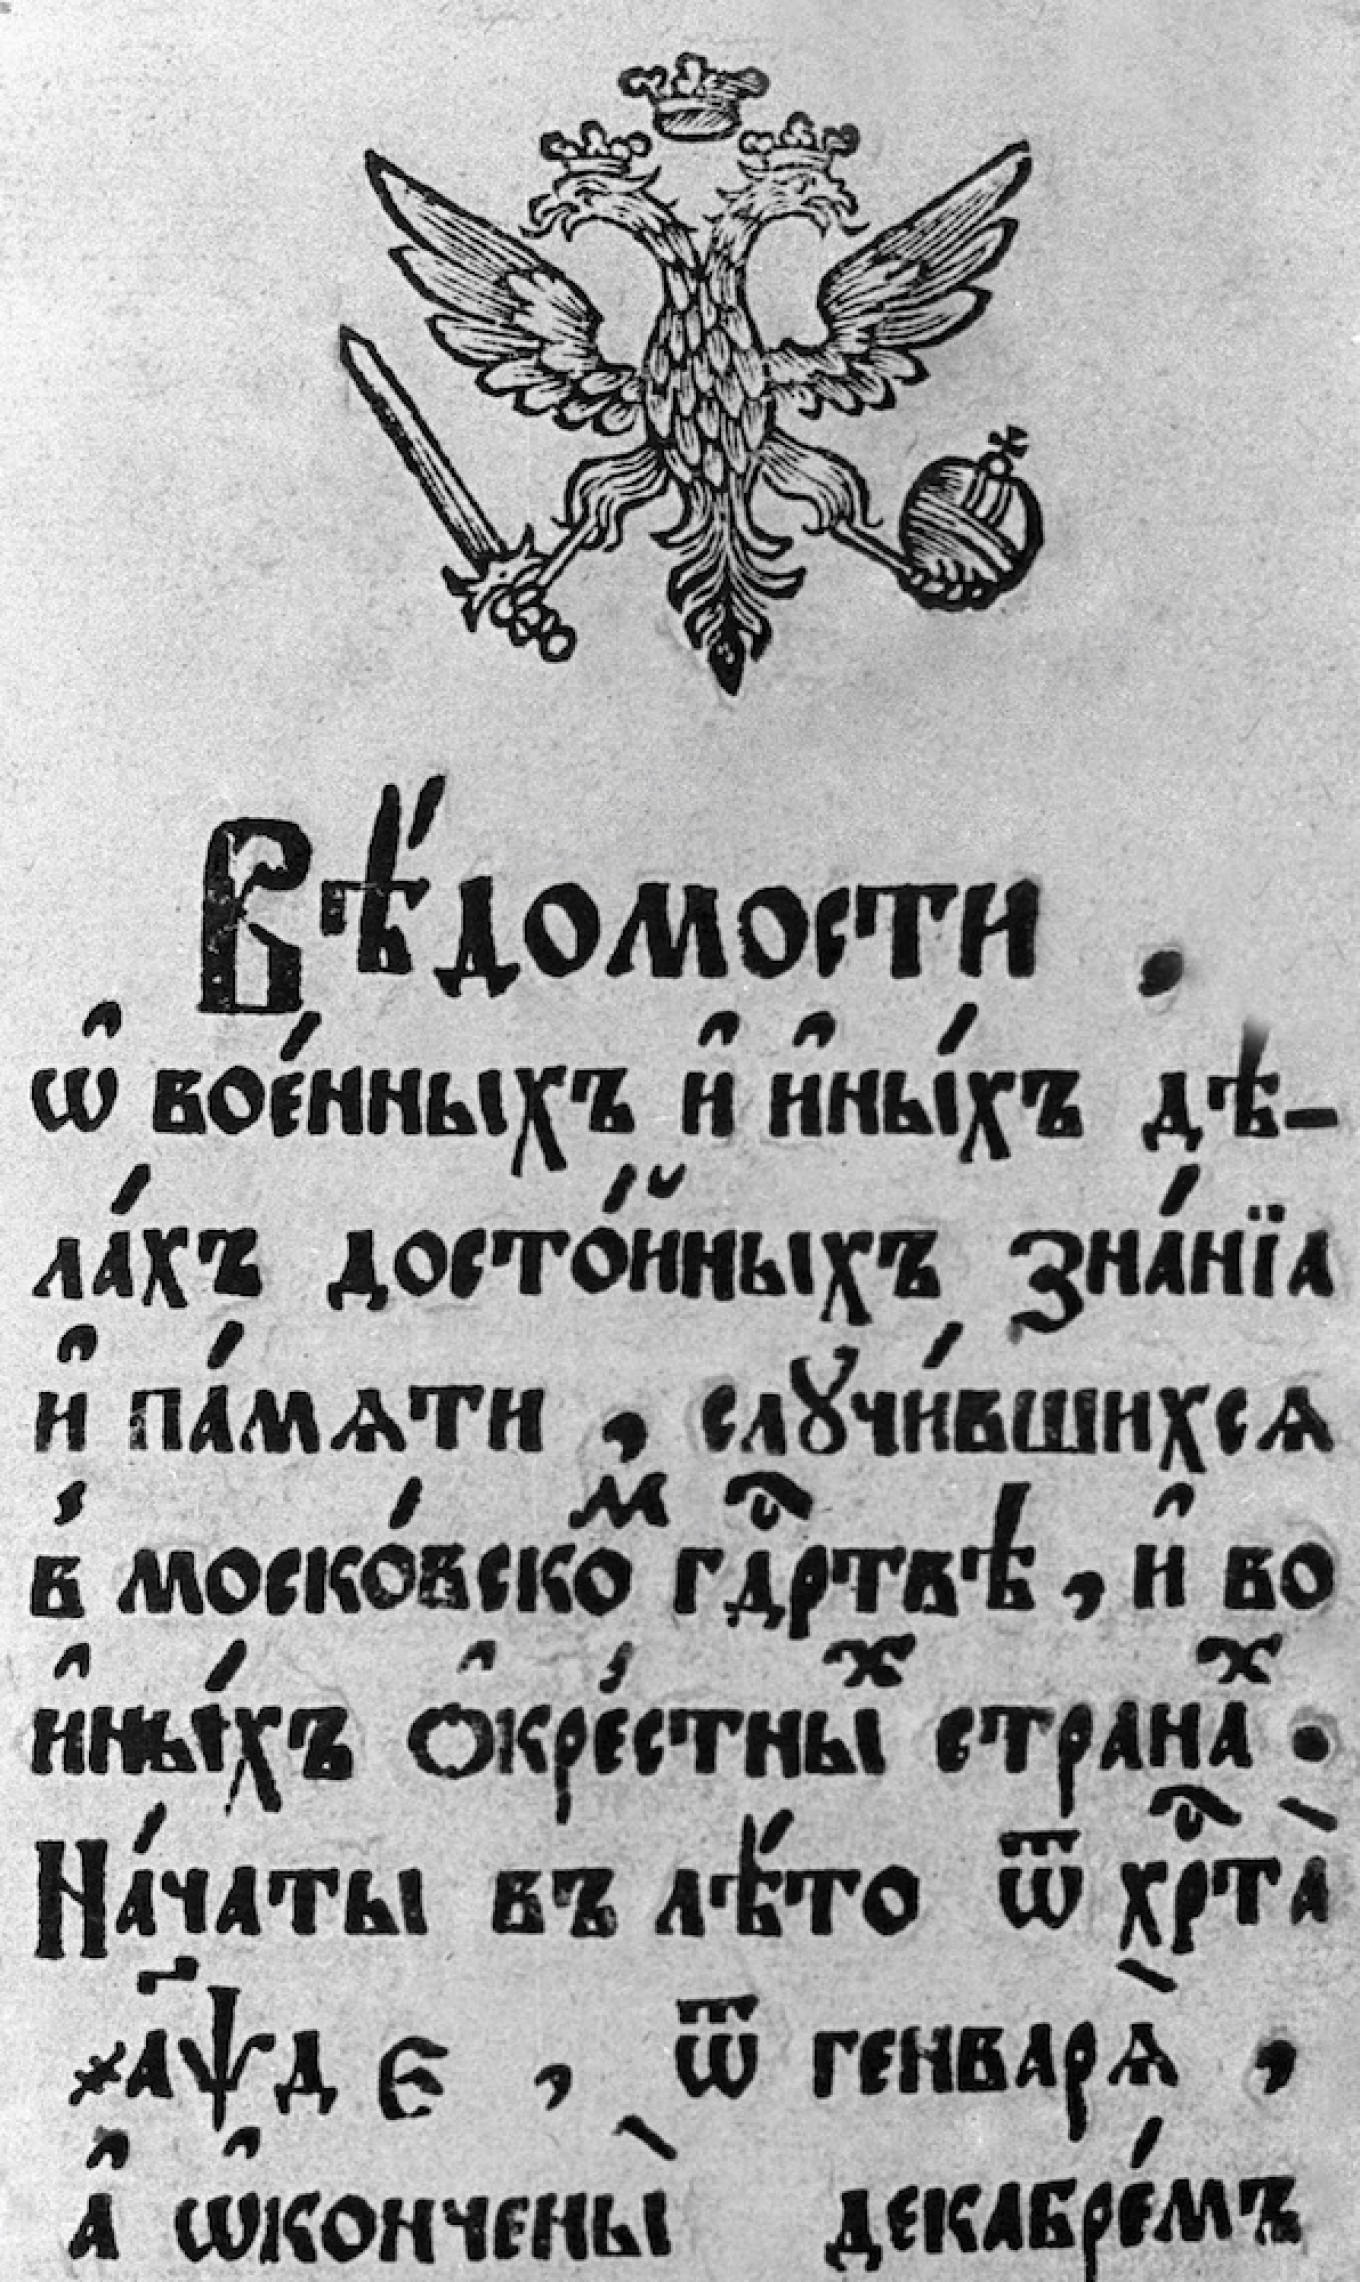 A sample of the St. Petersburg Vedomosti, which first appeared in 1703 on the orders of St. Peter the Great. RIA Novosti